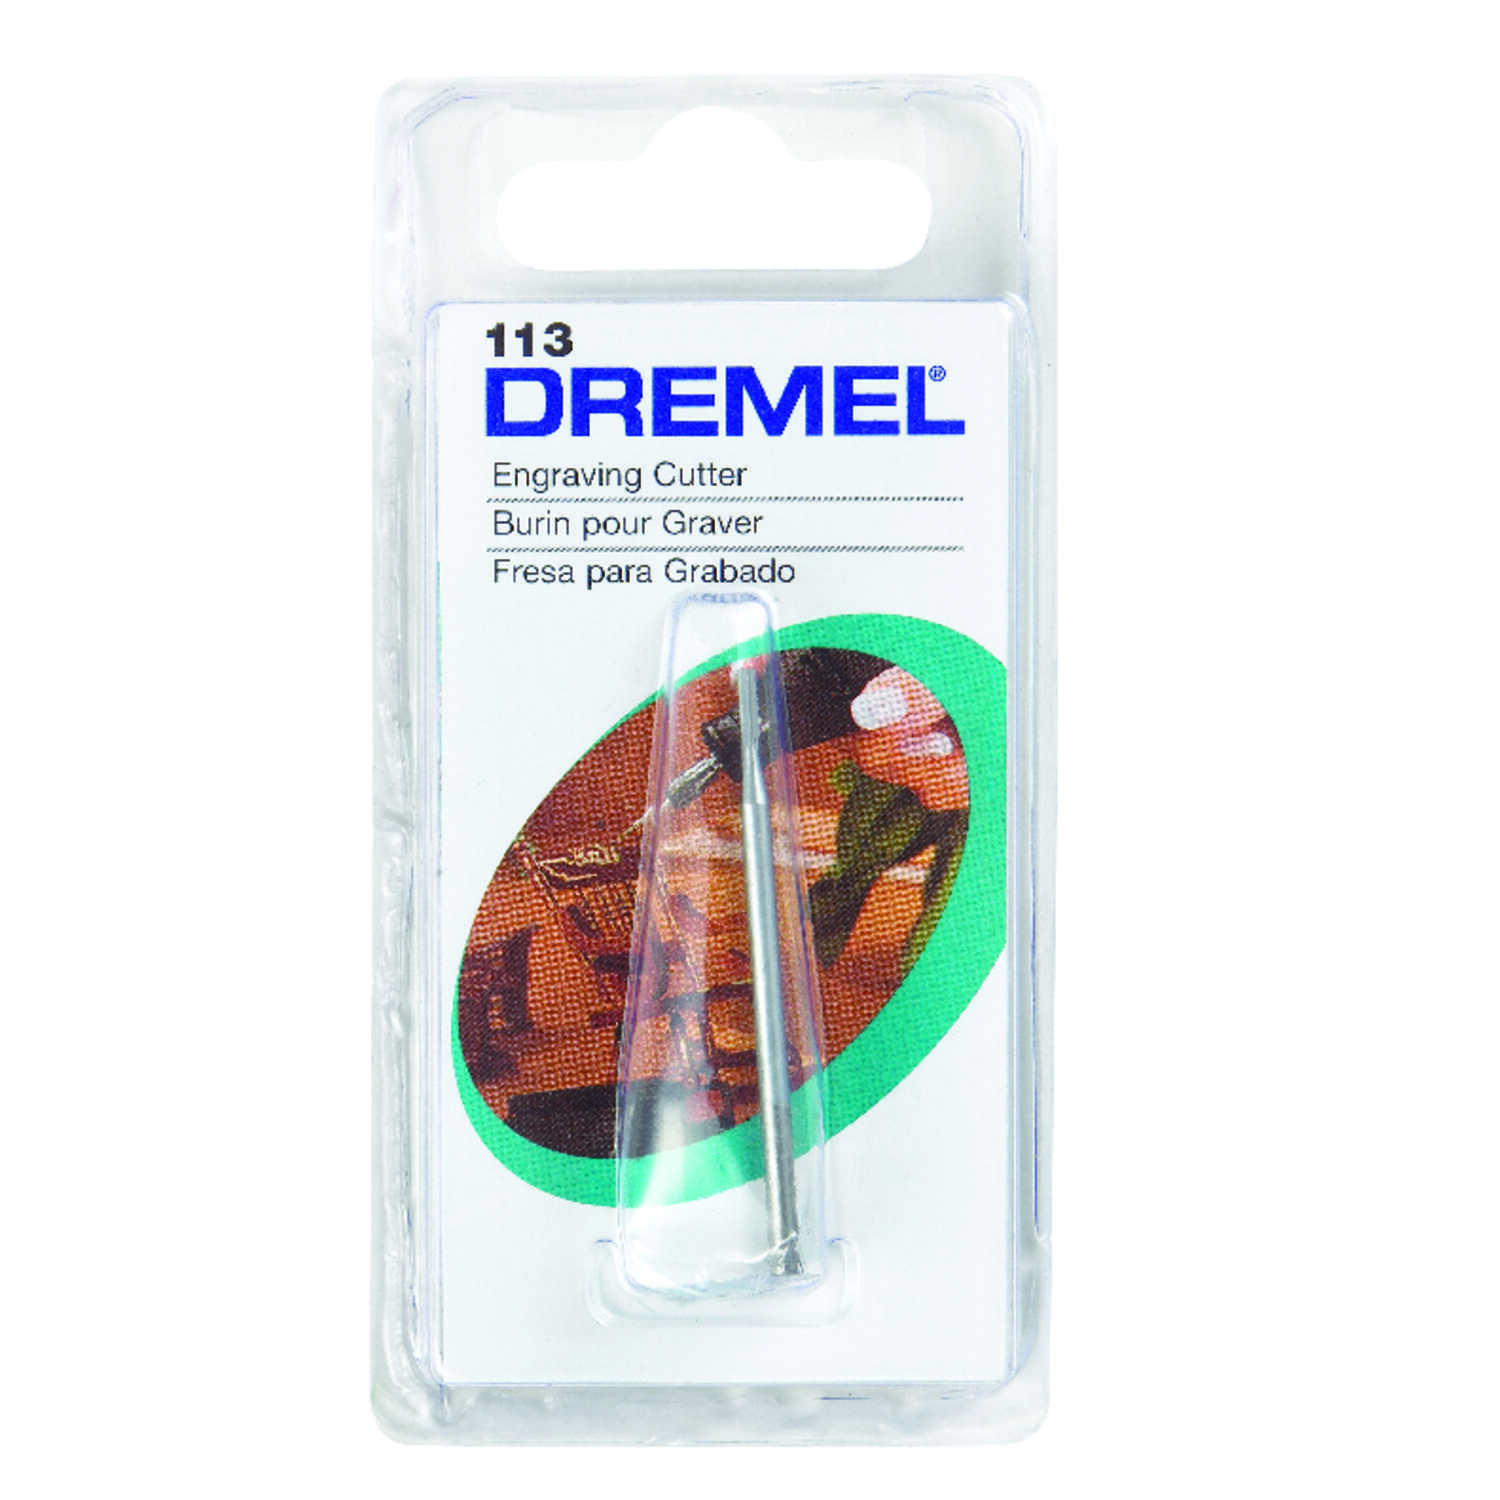 Dremel  1/8 in. Dia. High Speed Steel  Engraving Cutter  1 pk